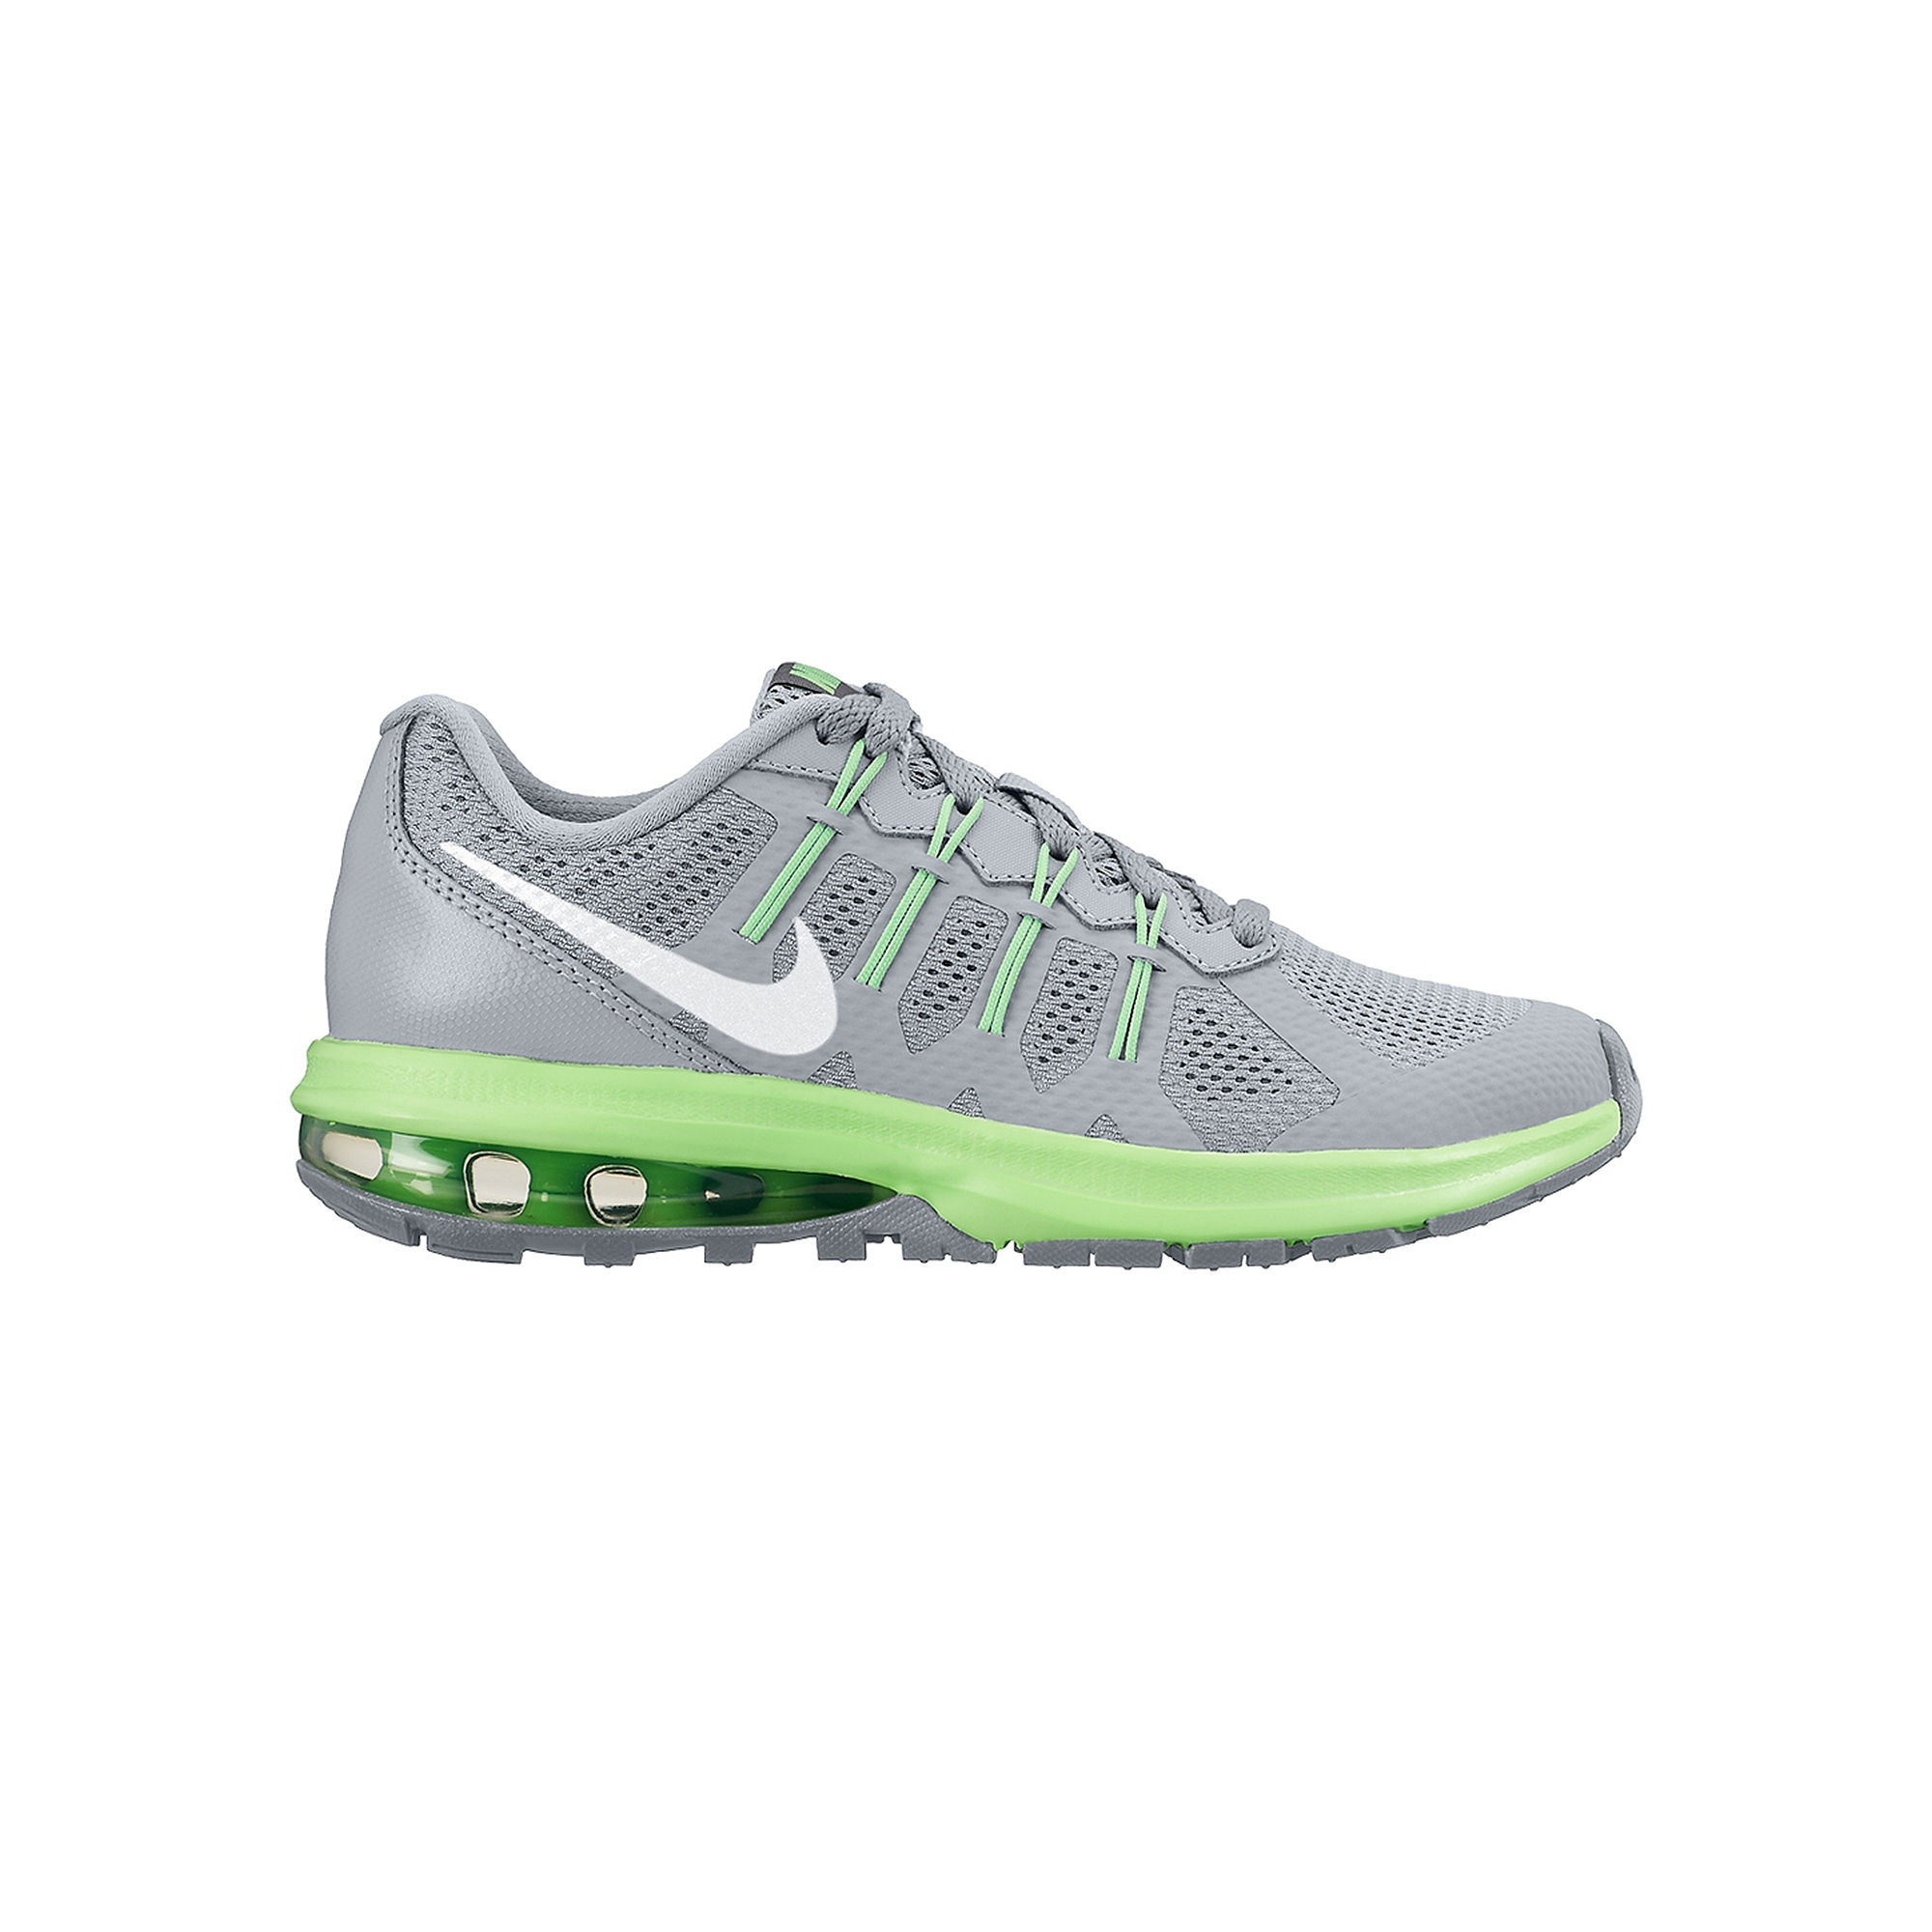 248738dd2c ... UPC 887223108801 product image for Nike Air Max Dynasty Boys Running  Shoes - Big Kids